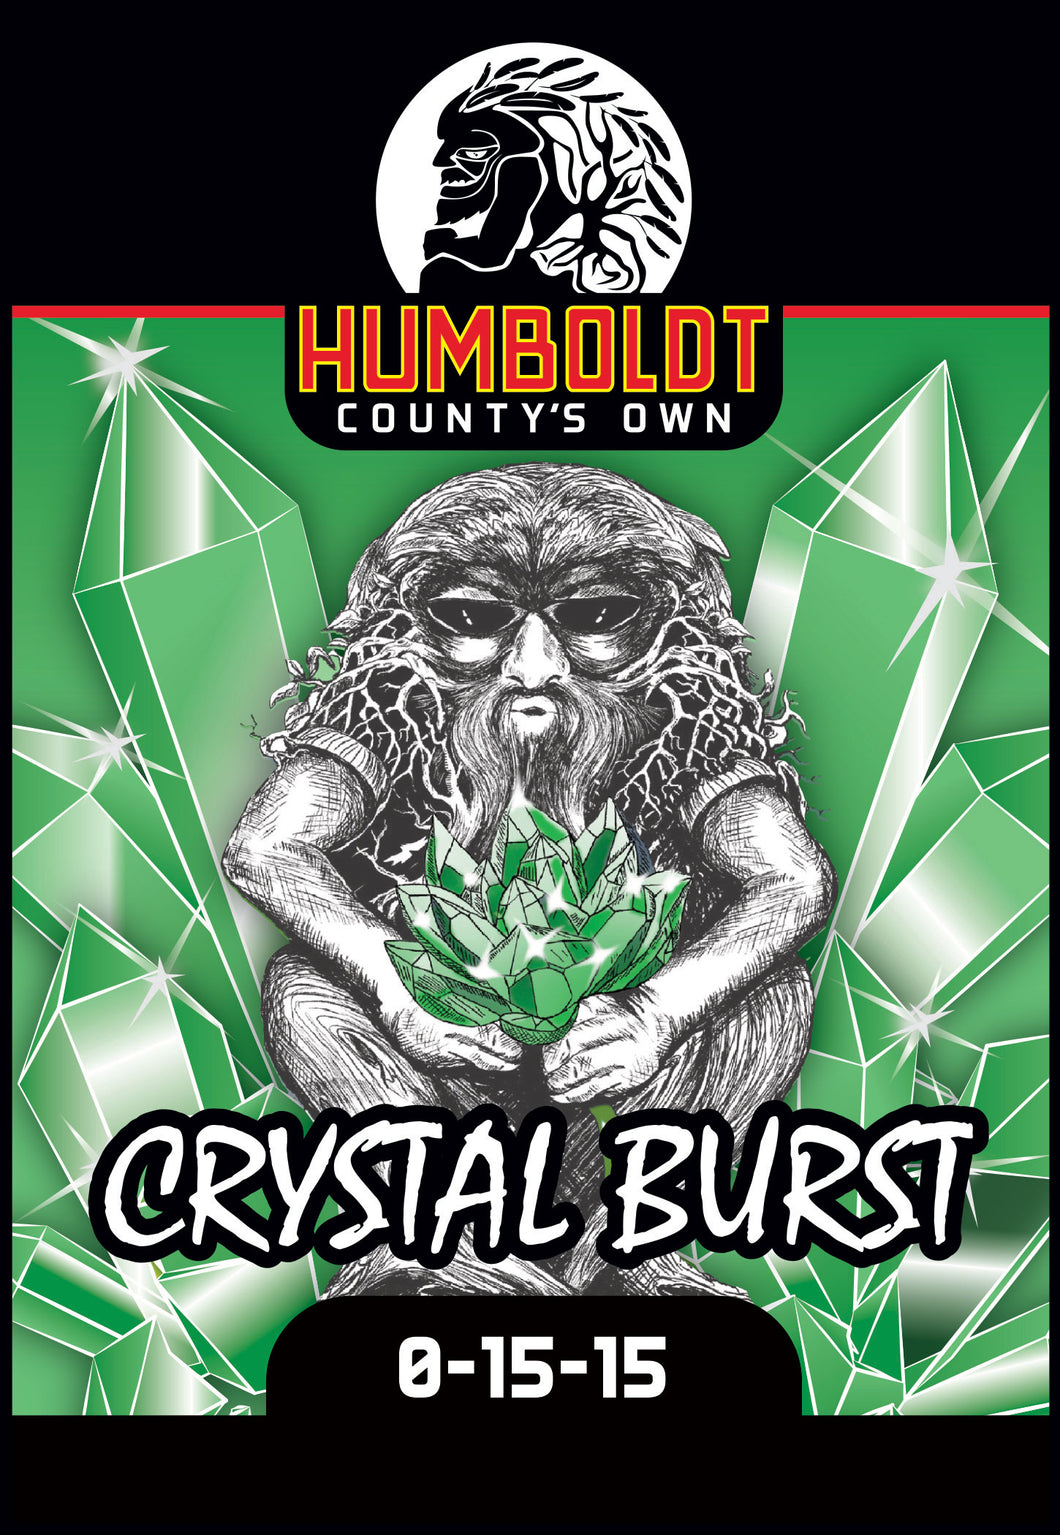 Humboldt County's Own Crystal Burst